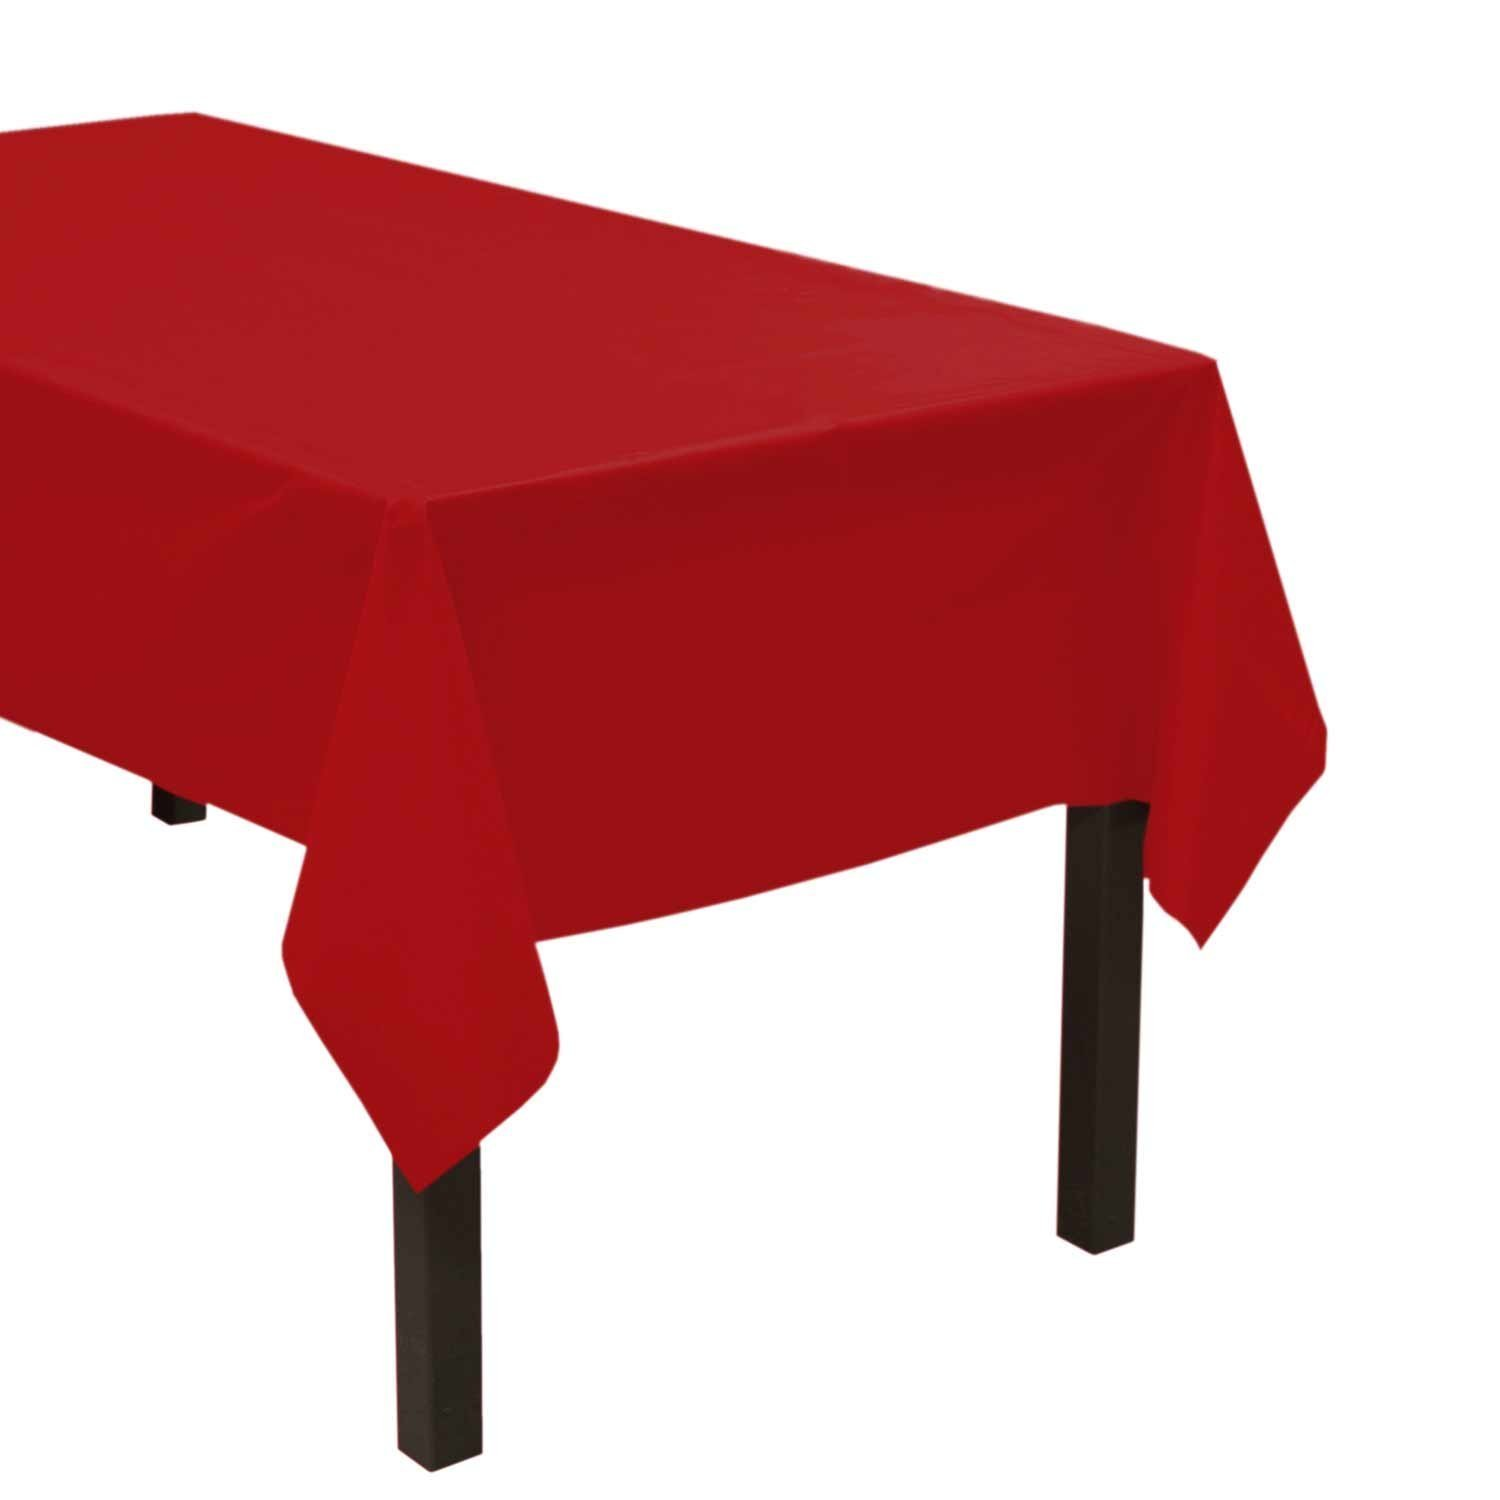 12 Pack 54'' X 108'' Table Cover Premium Plastic Tablecloth for any Party or Event - RED